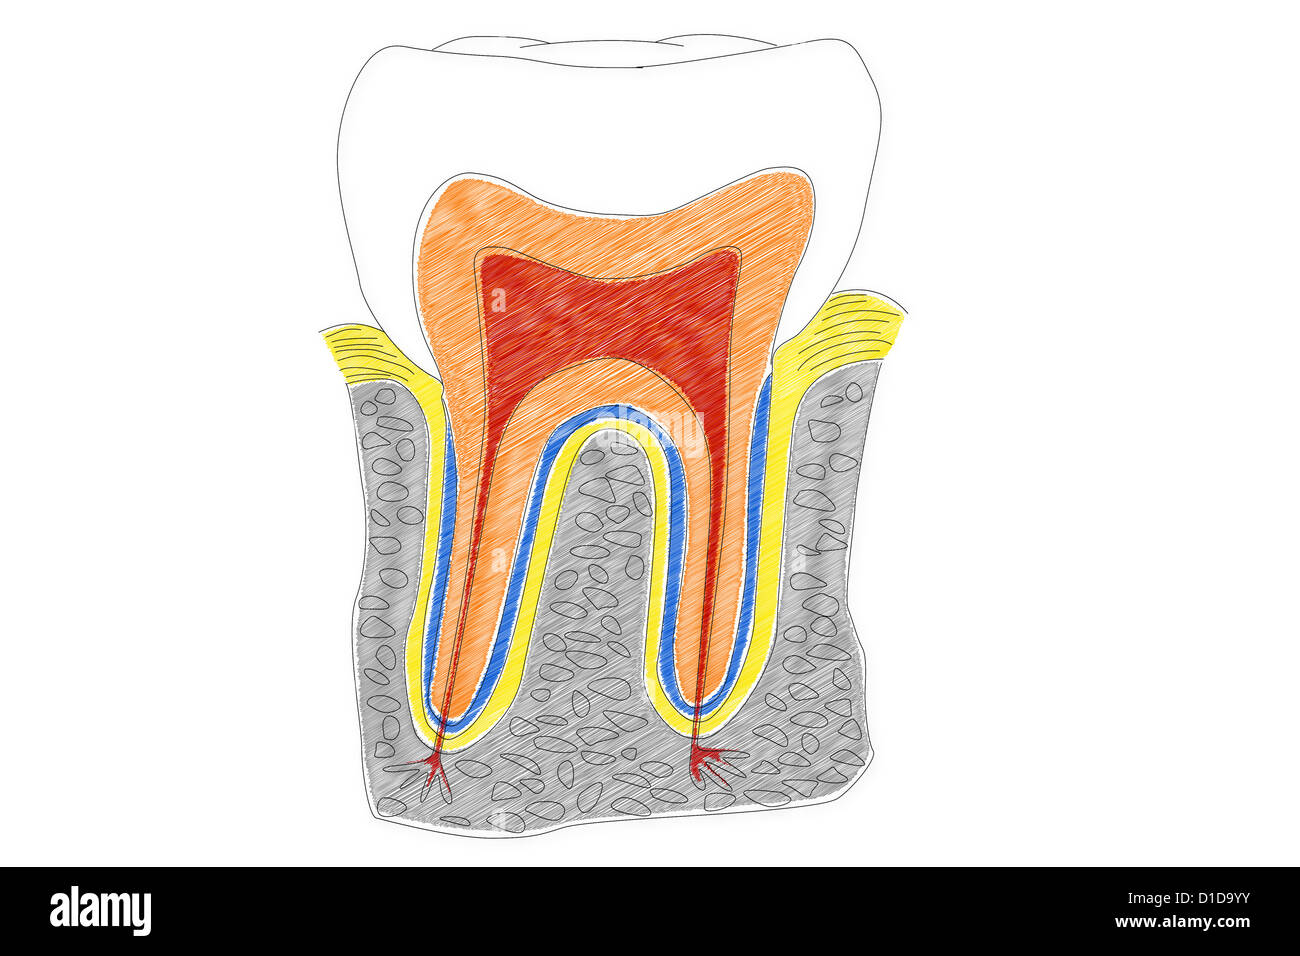 Structure Human Teeth Illustration Stock Photos & Structure Human ...